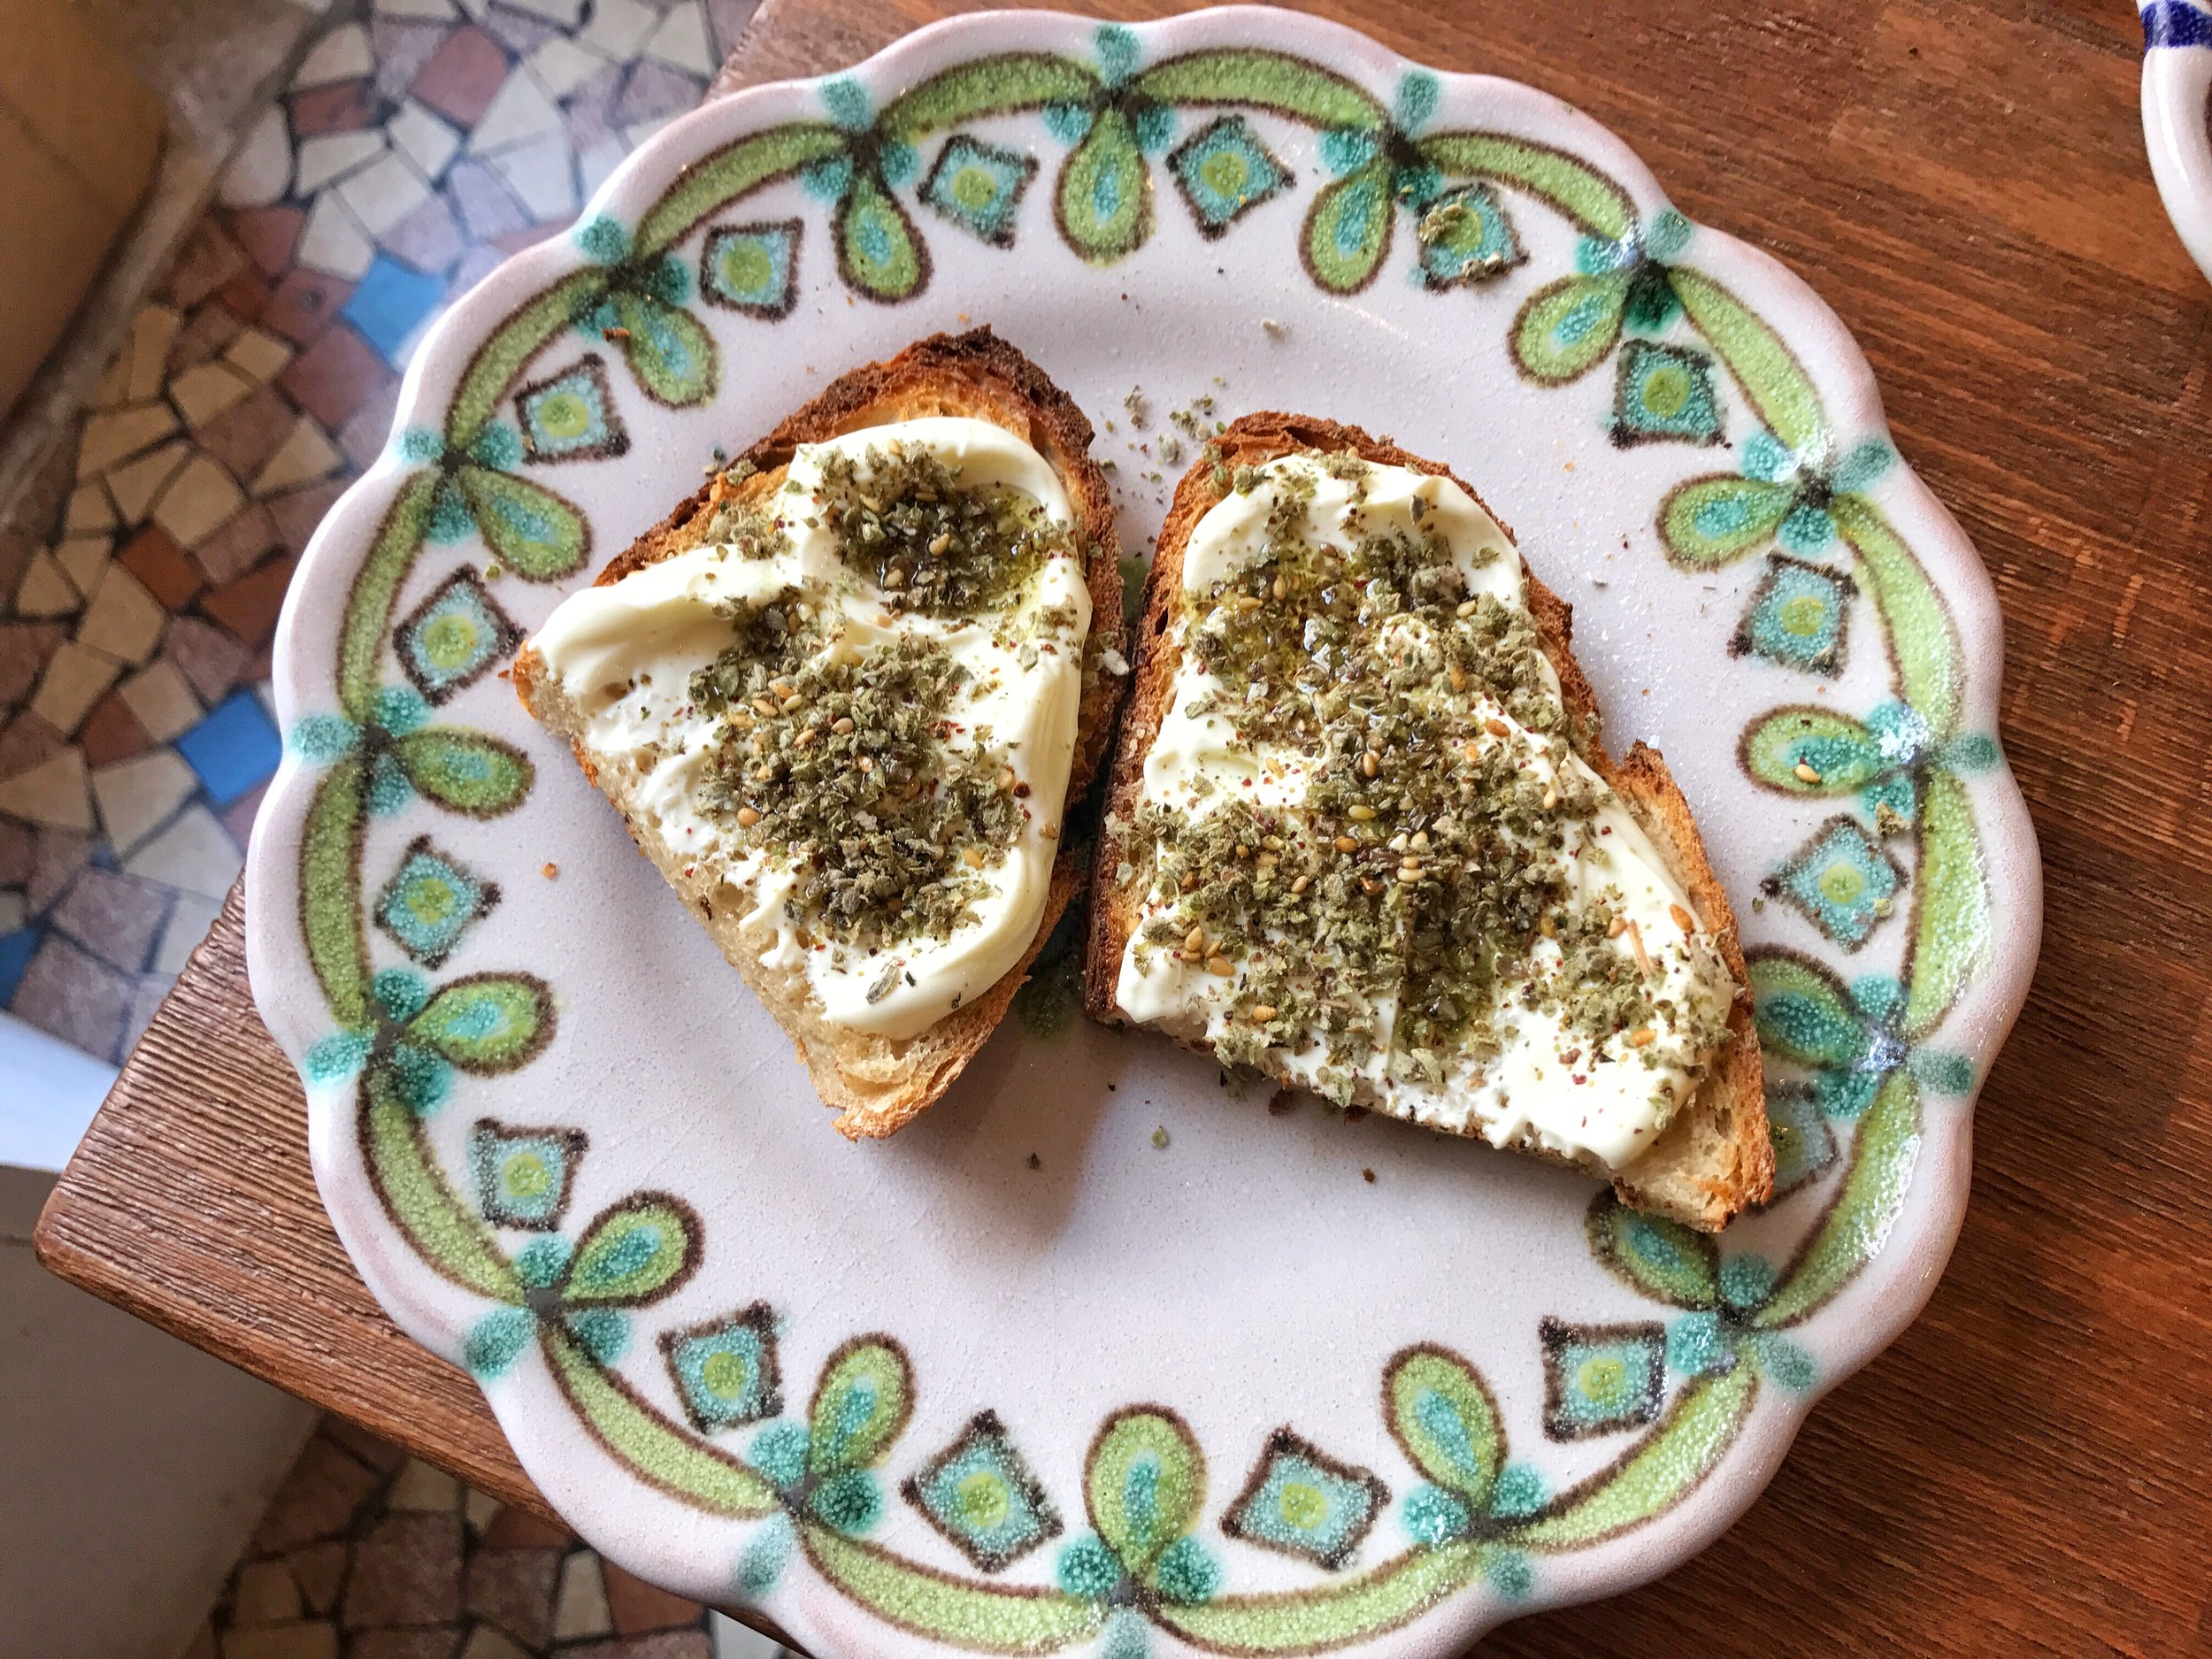 Labne with za'atar on toast- The labneh was delicious, creamy and had the perfect amount of za'atar on it.